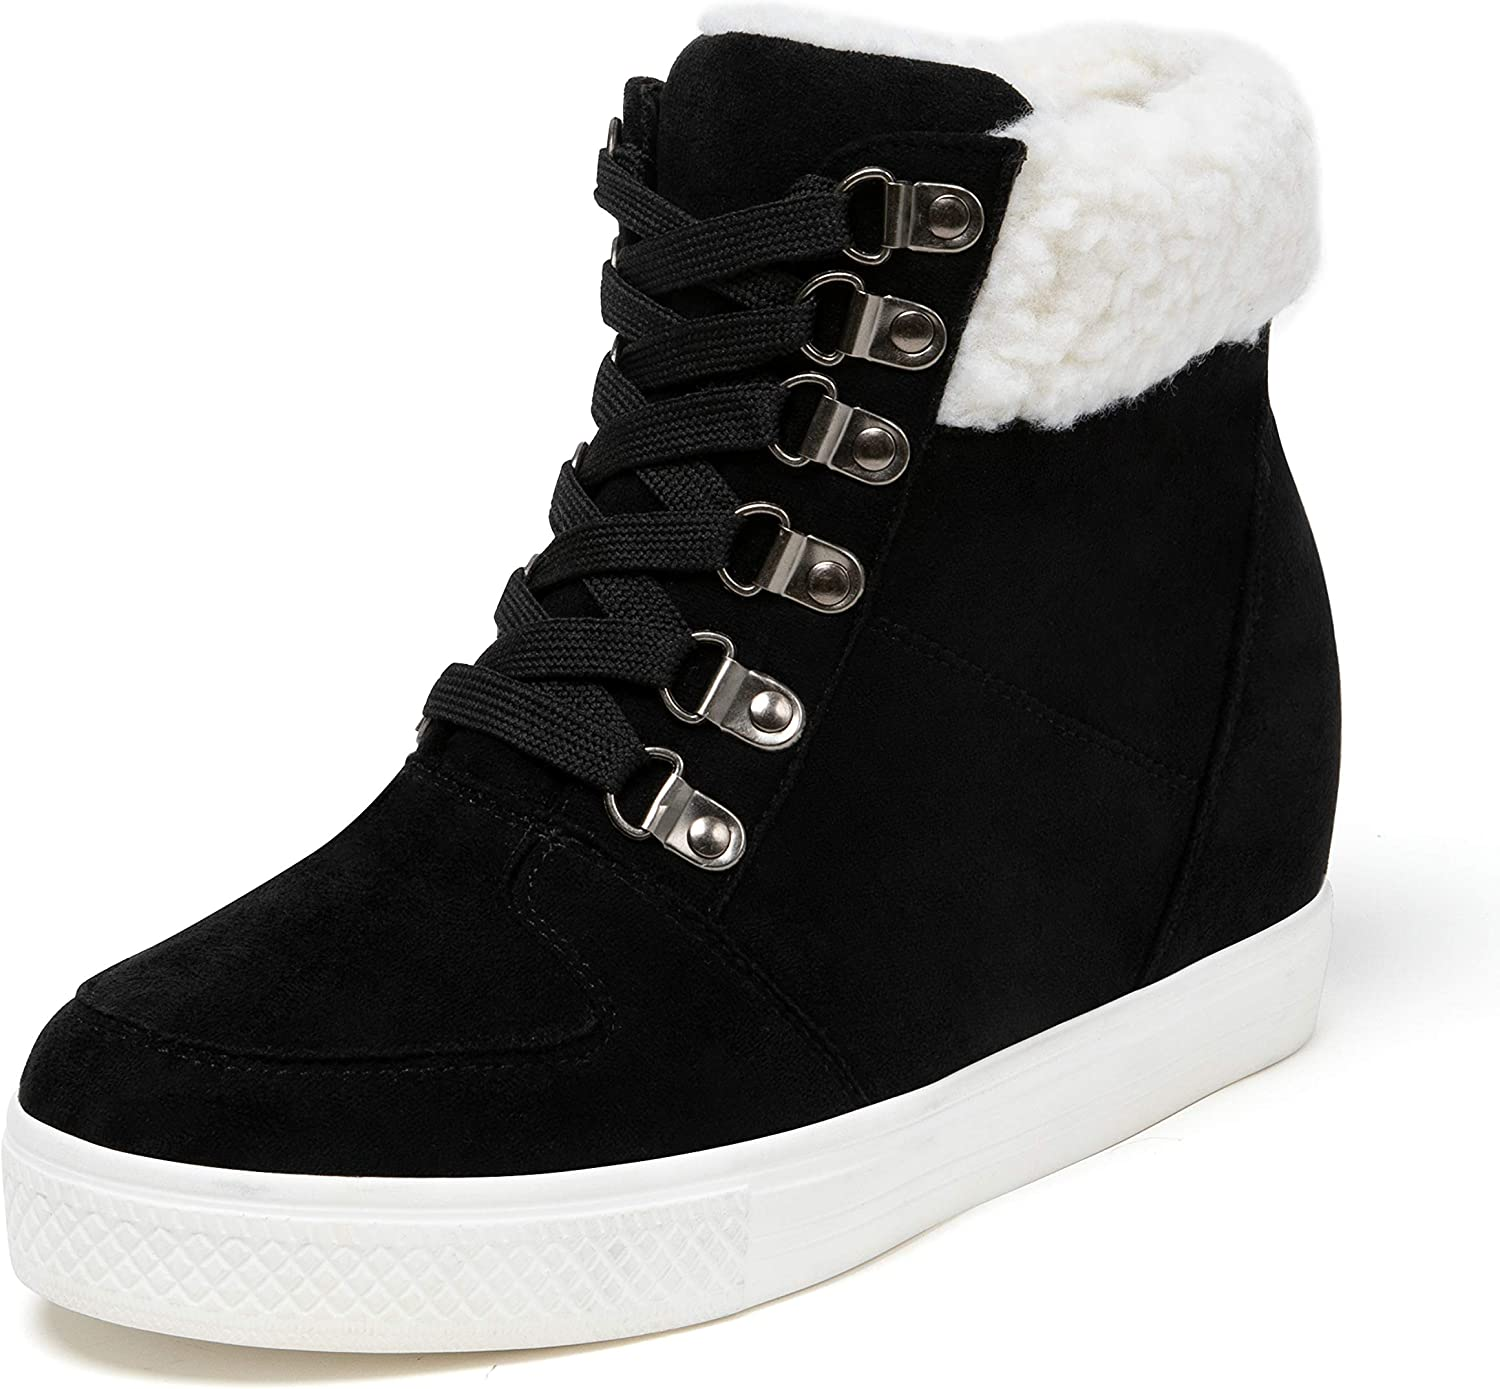 Fur High Top Hidden Wedge Shoes Lace Up